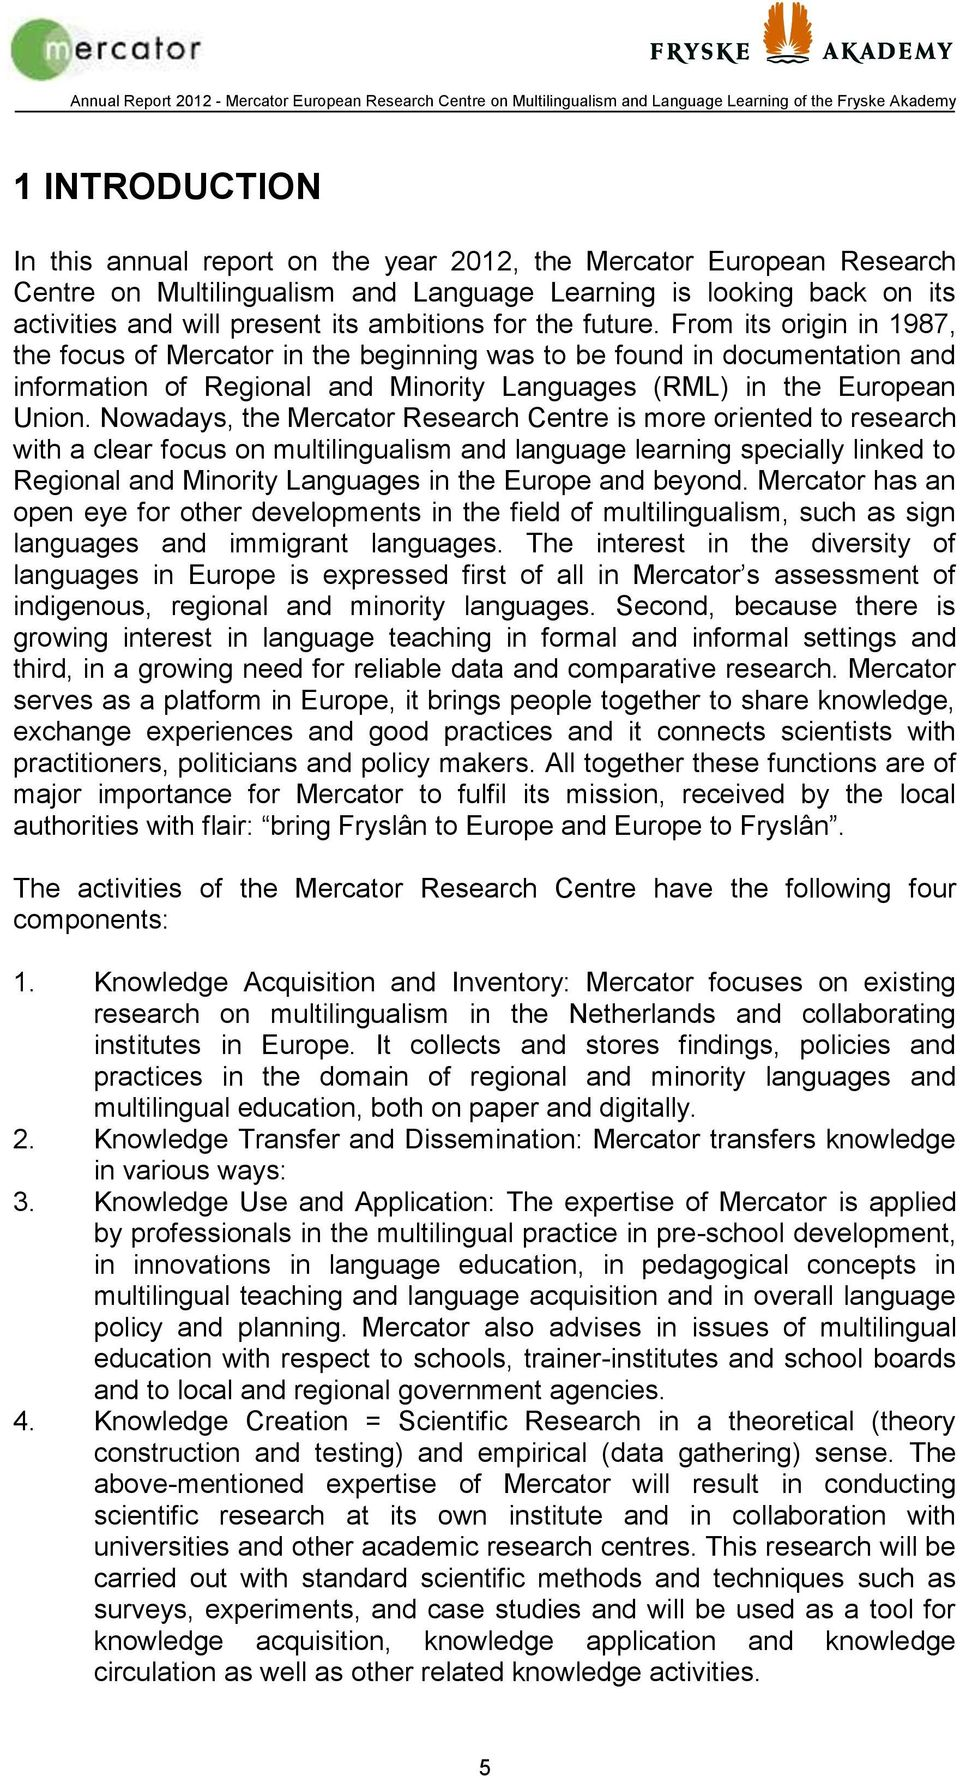 Nowadays, the Mercator Research Centre is more oriented to research with a clear focus on multilingualism and language learning specially linked to Regional and Minority Languages in the Europe and